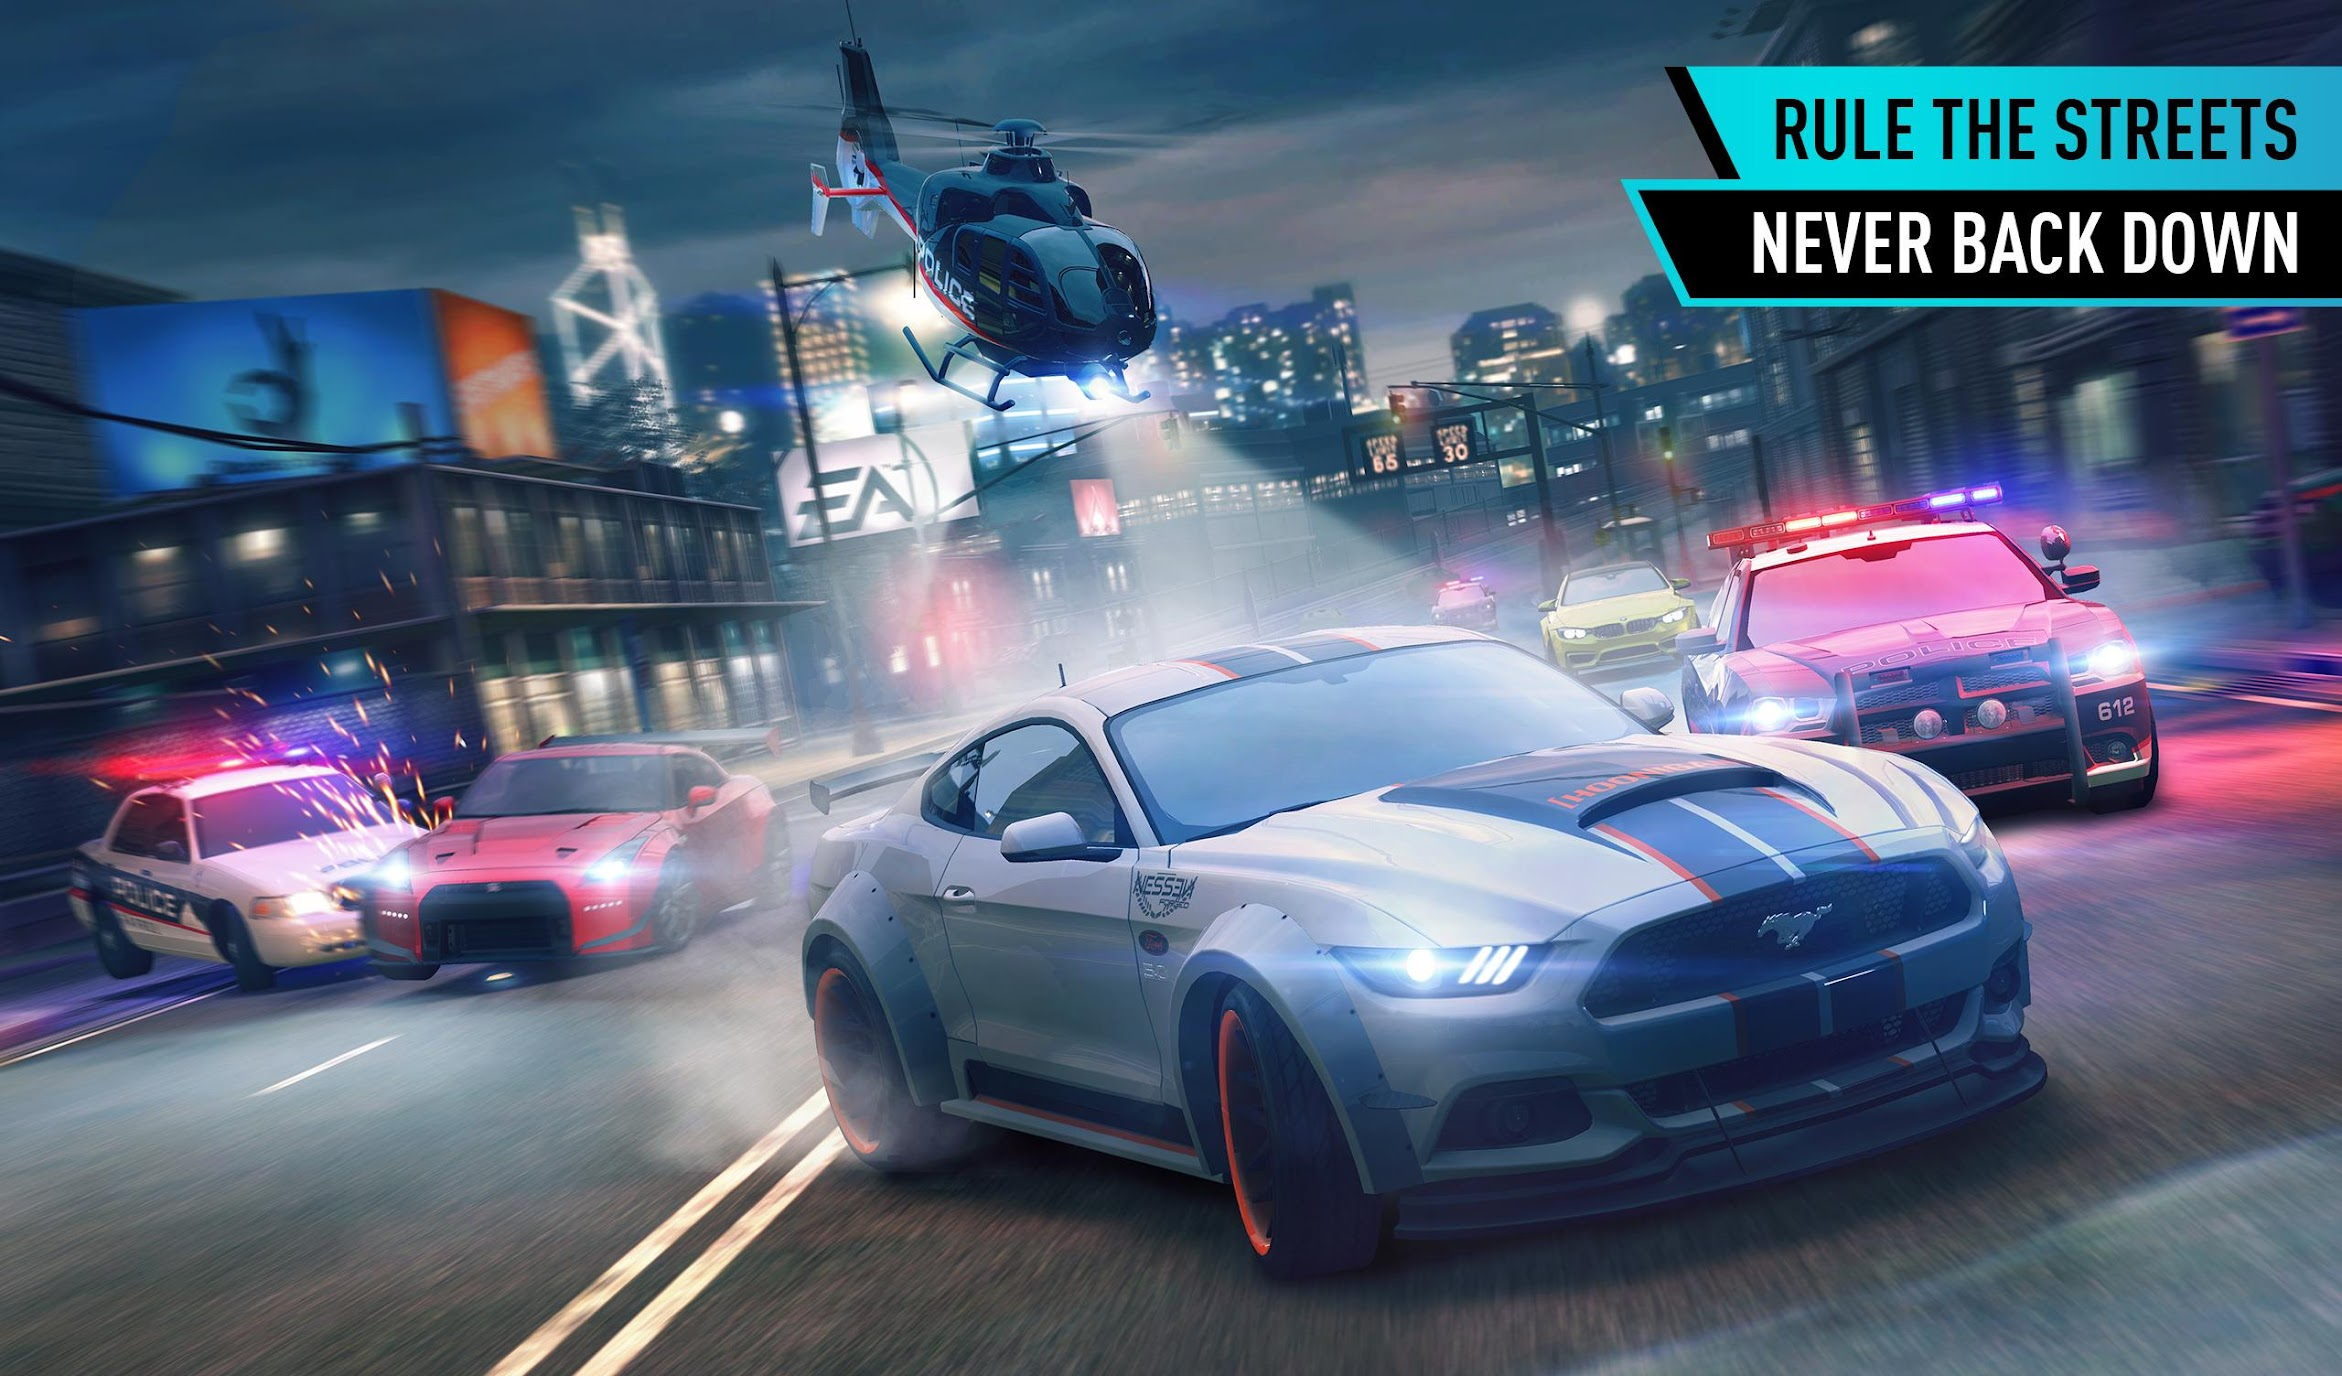 Need for Speed No Limits Mod apk (Unlimited Money/Unlocked All) GPU 5